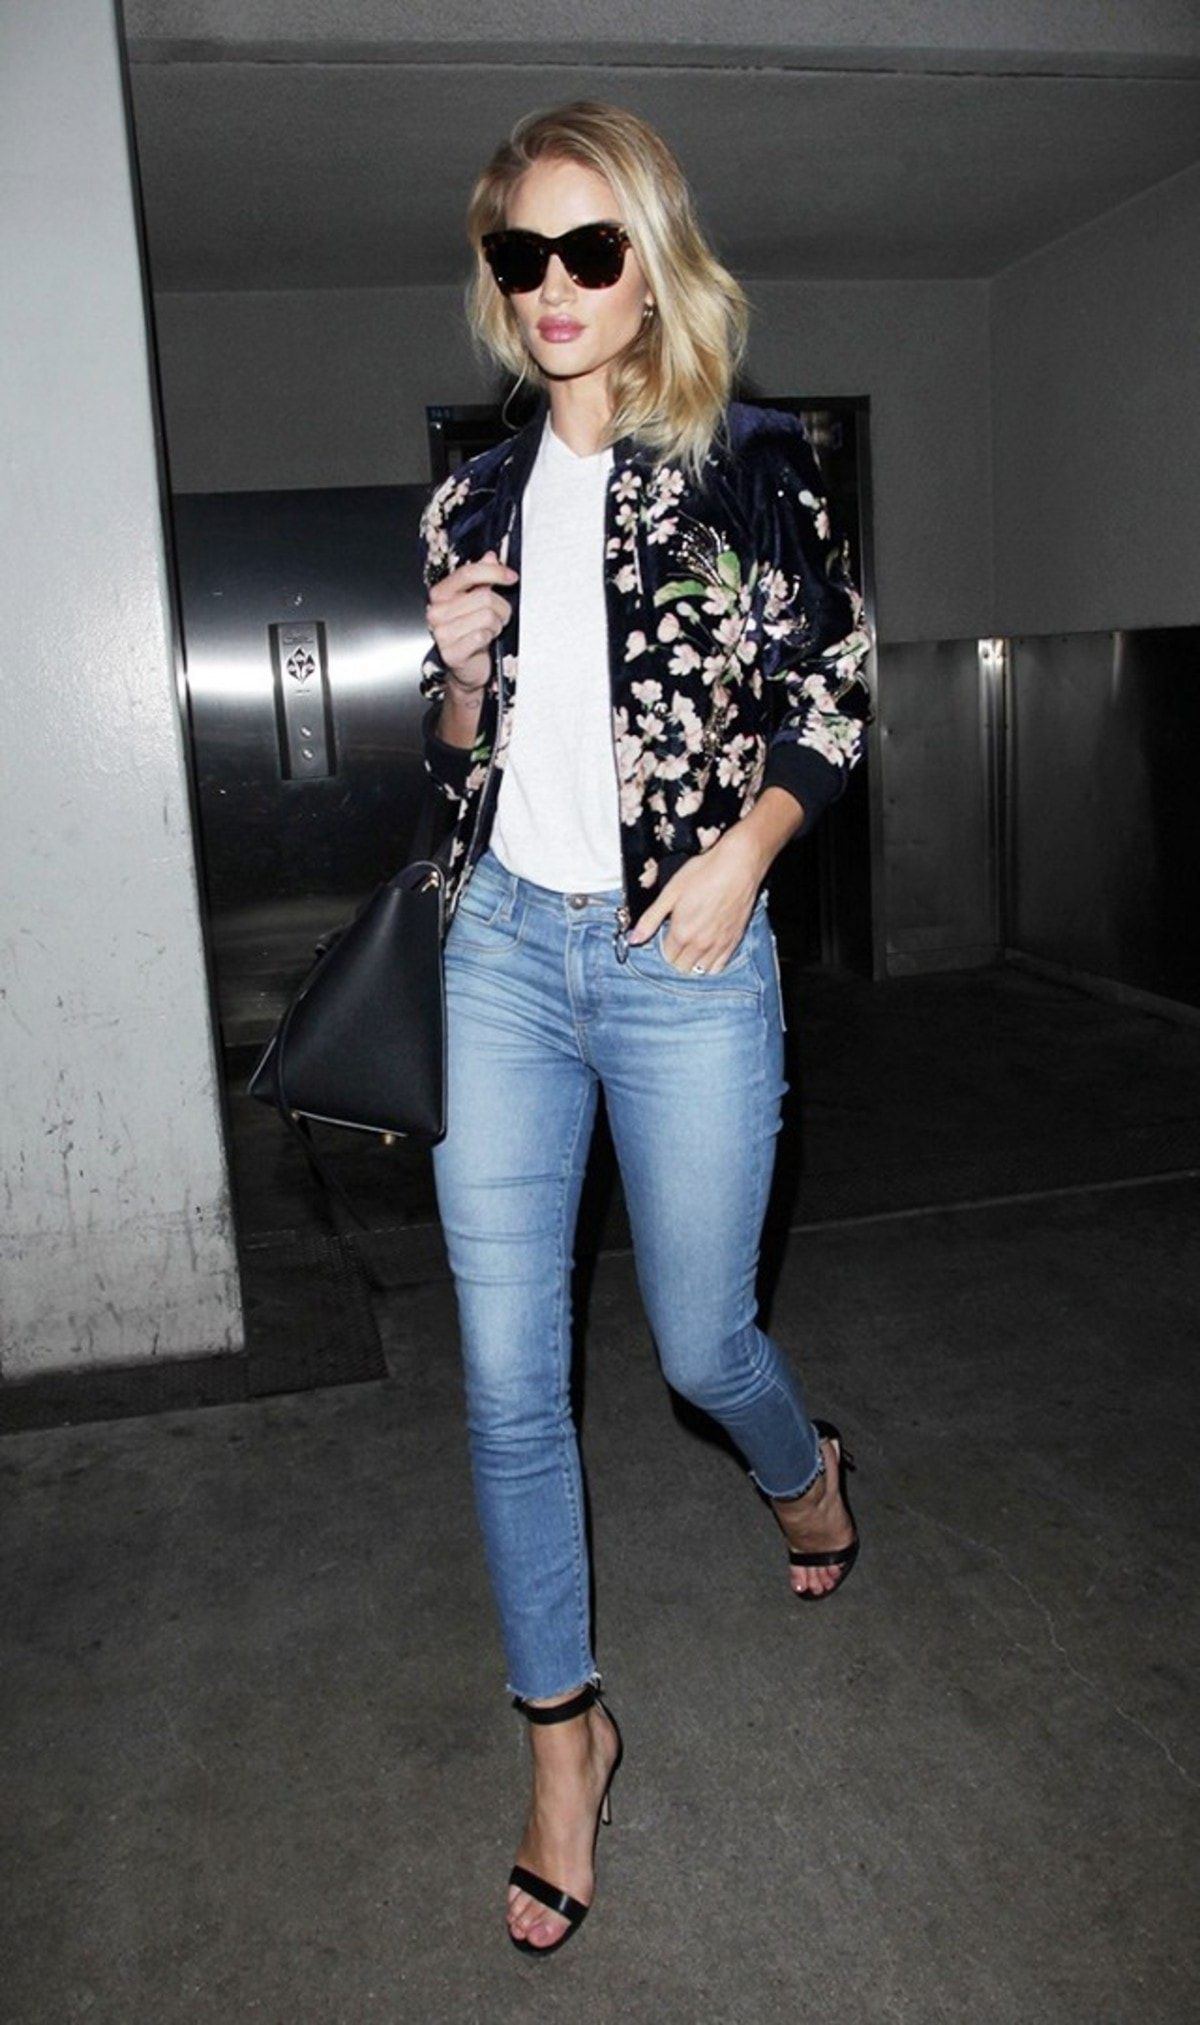 7-summer-airport-outfits-you-already-own-1808608-1466120029.640x0c